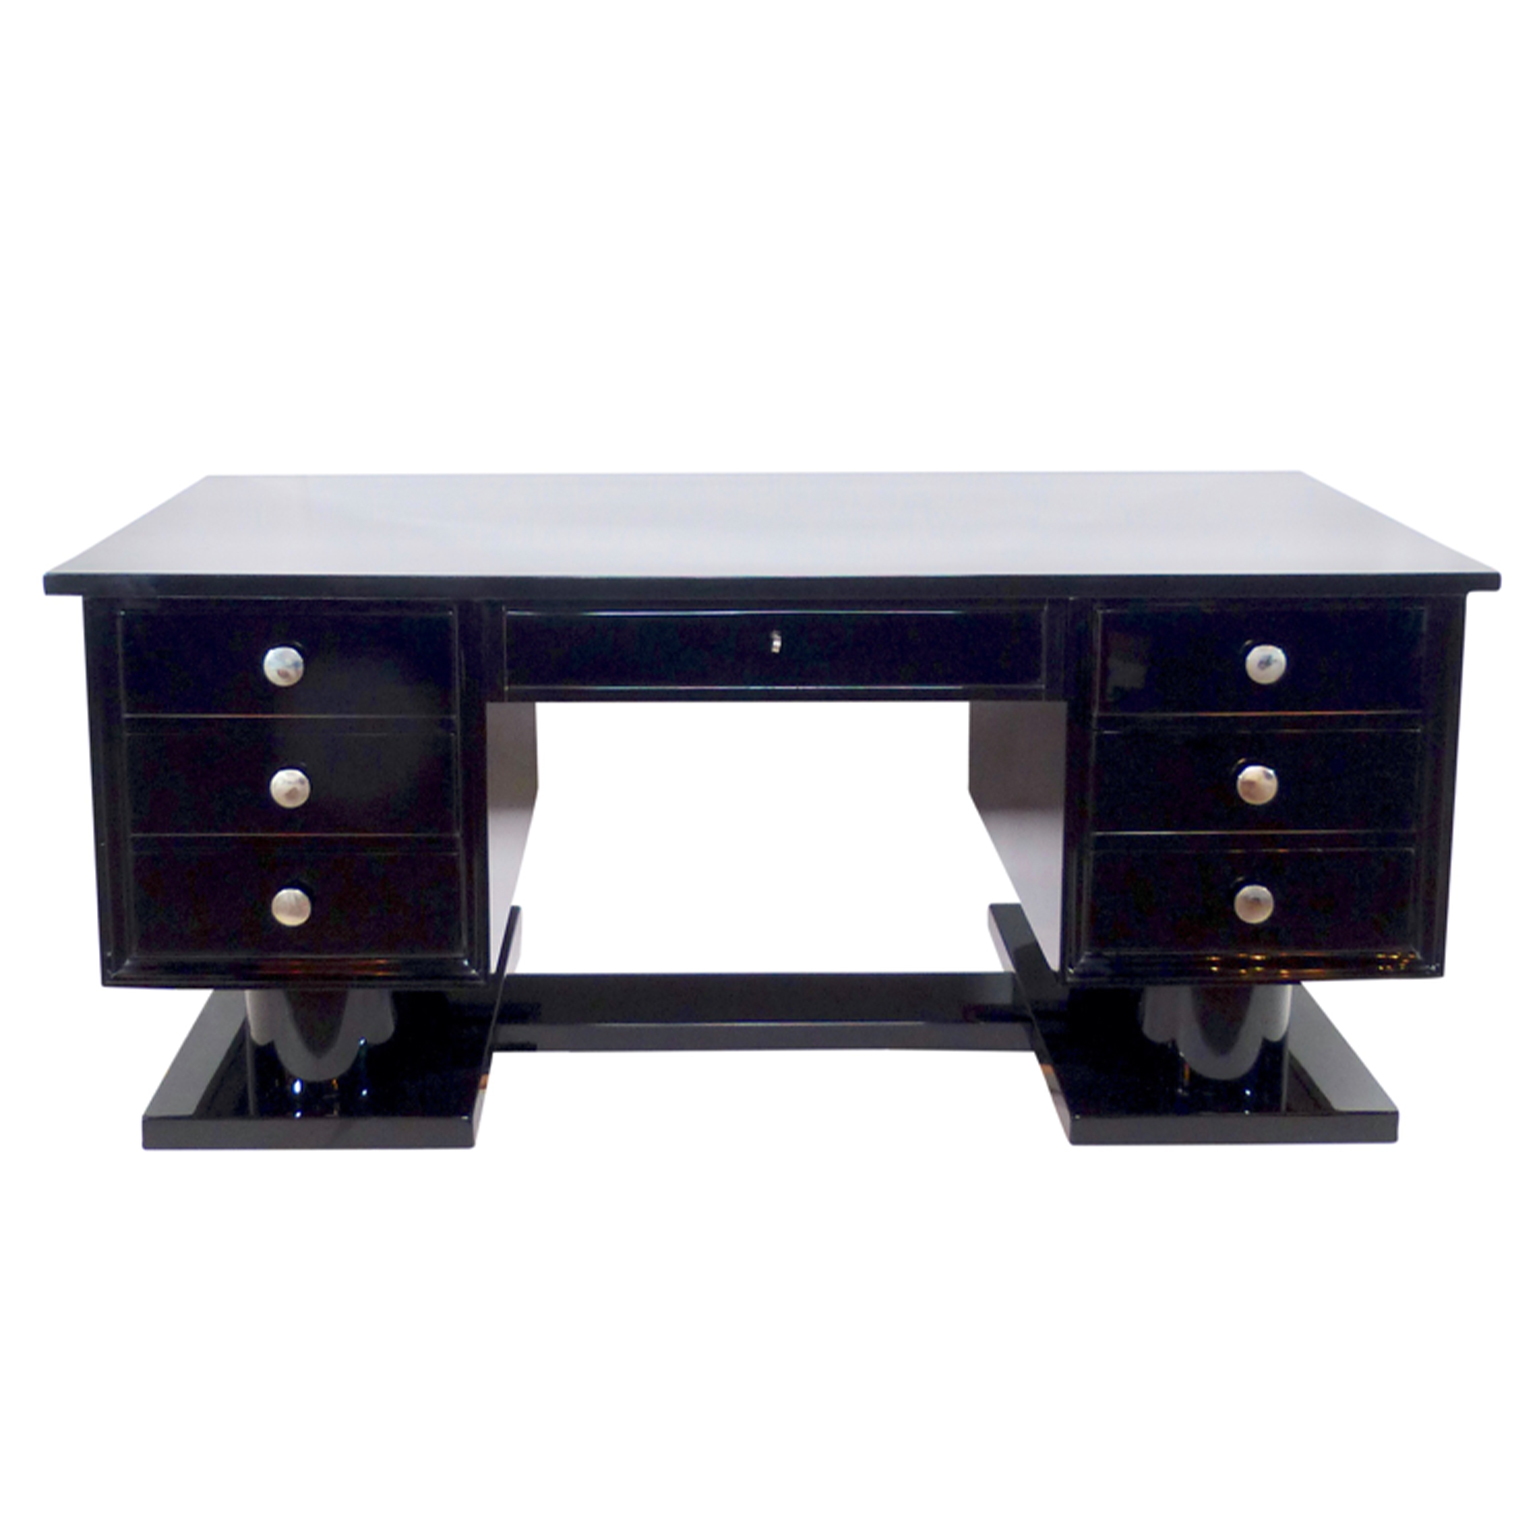 Art Deco High gloss, black piano lacquered desk with chrome-plated hardware